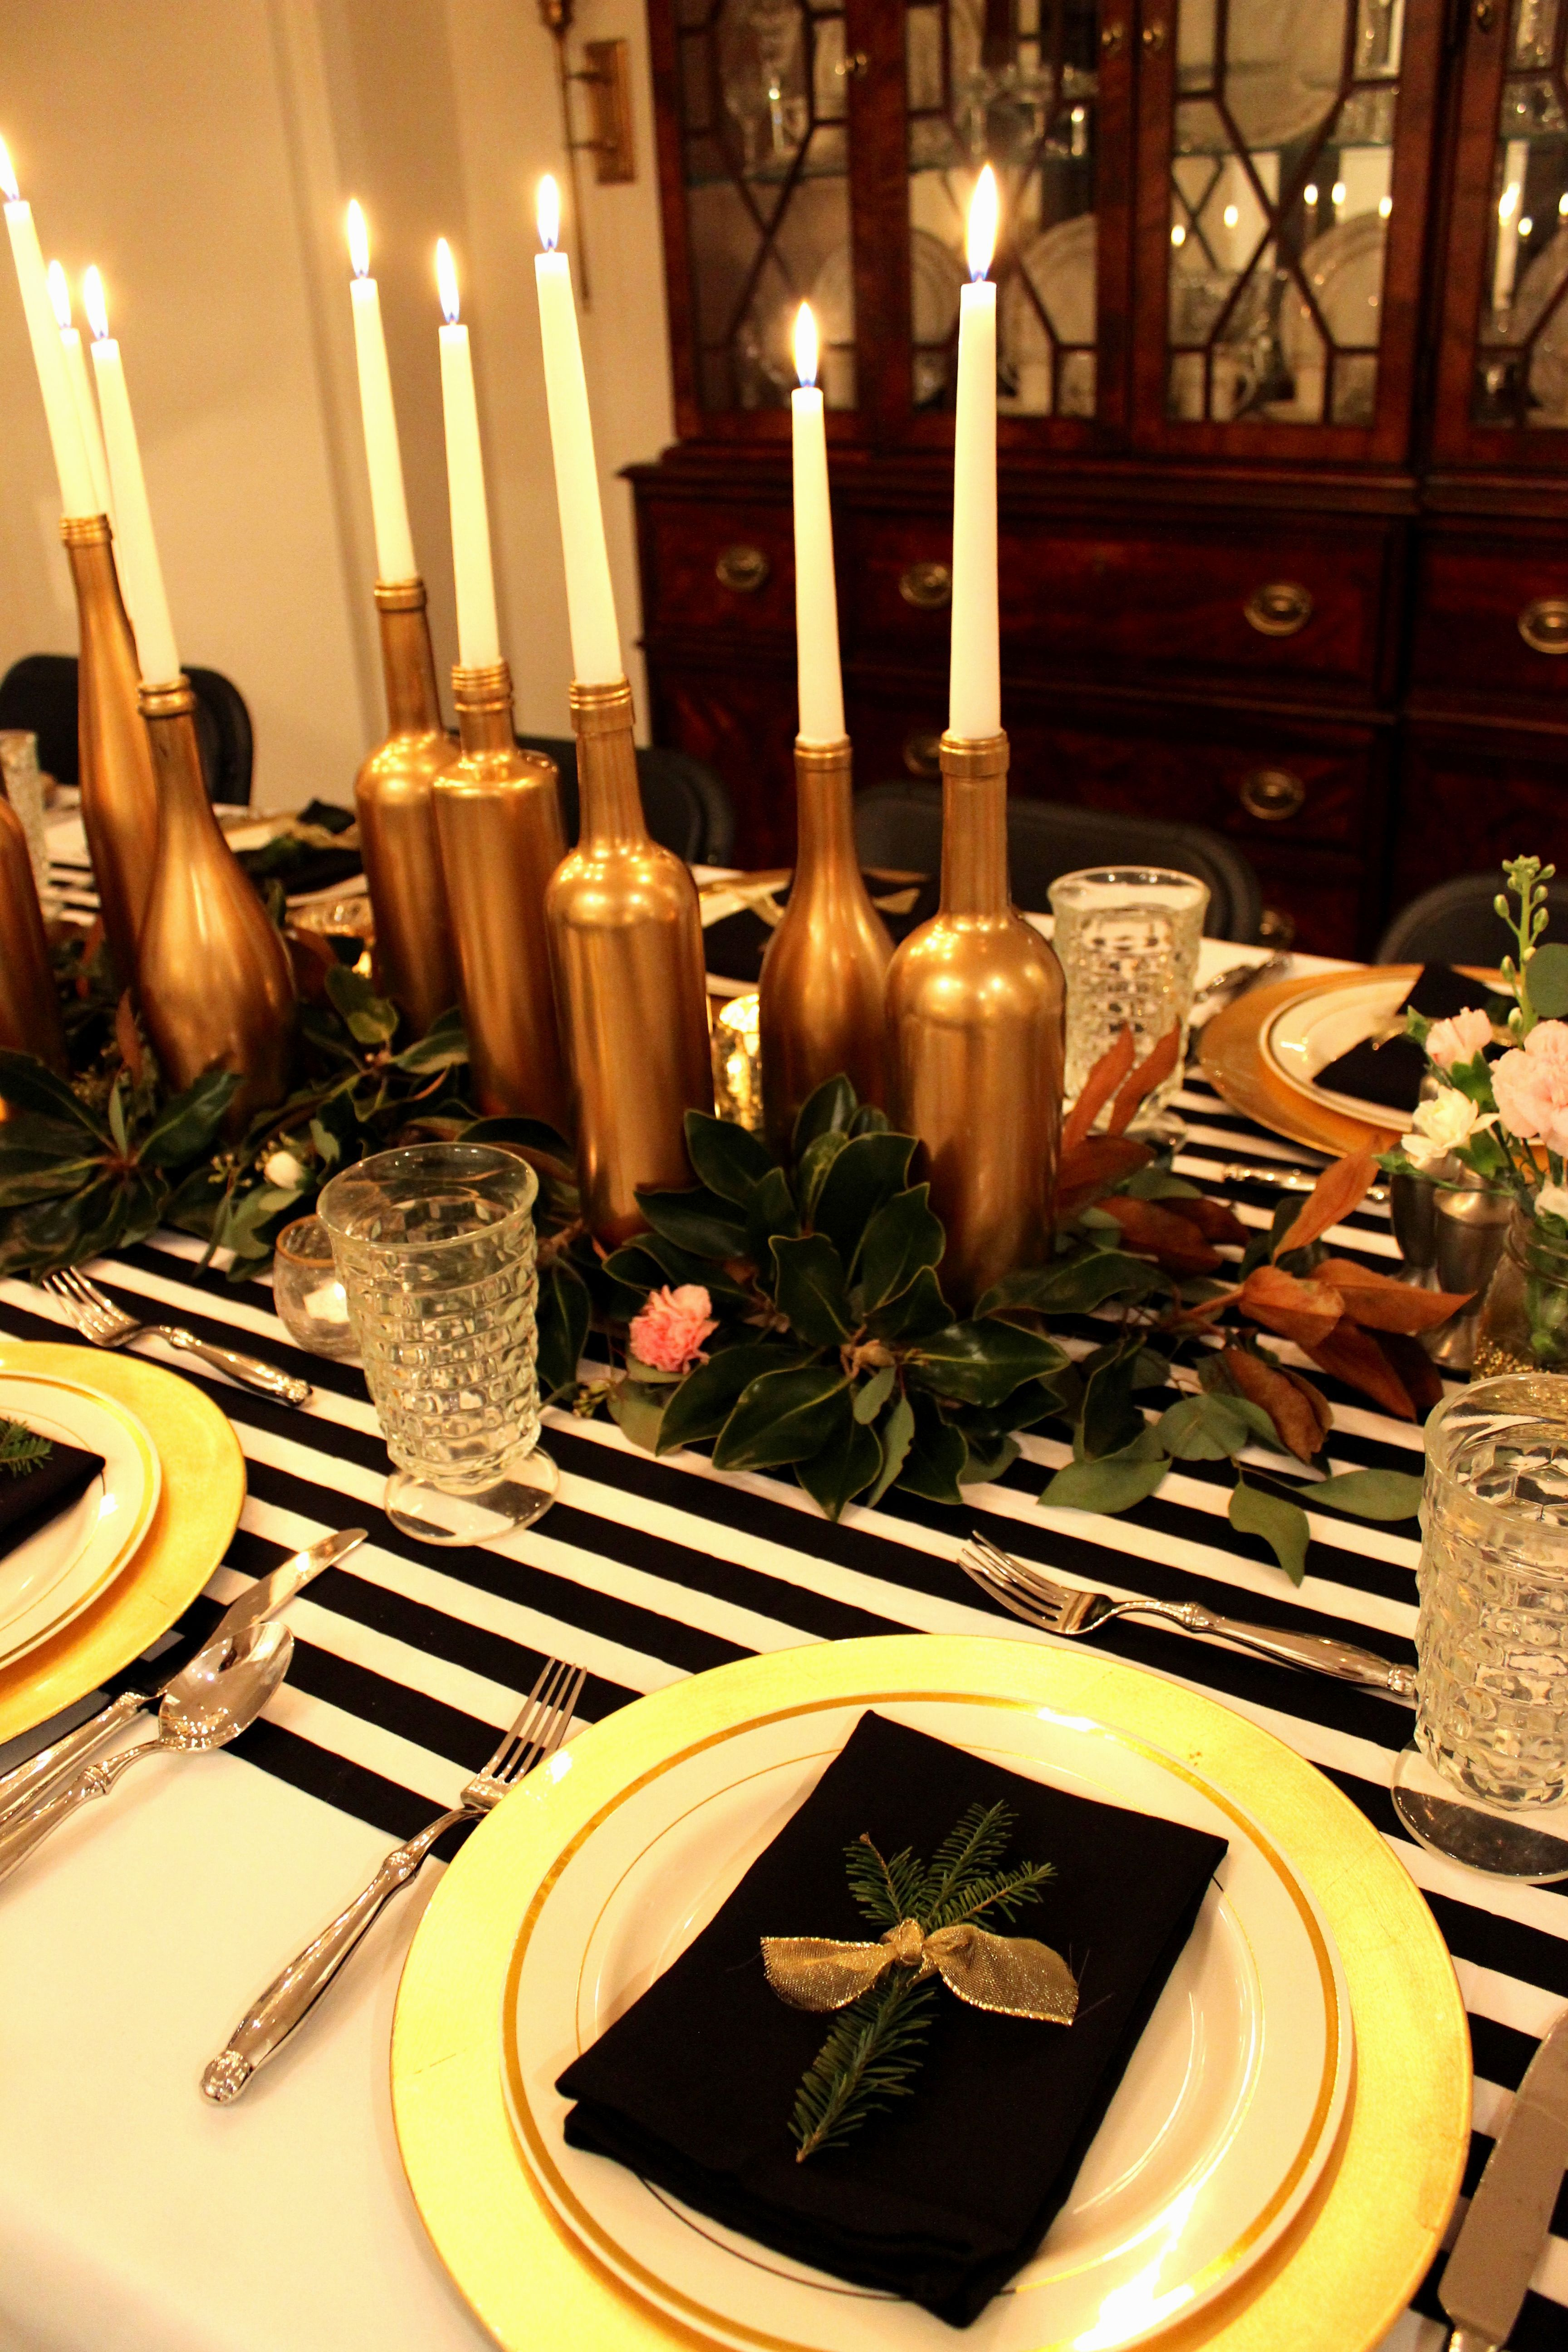 10 Black And Gold Centerpieces For Tables Awesome And Also Gorgeous Black And Gold Party Decorations Gold Table Decorations Black And Gold Centerpieces